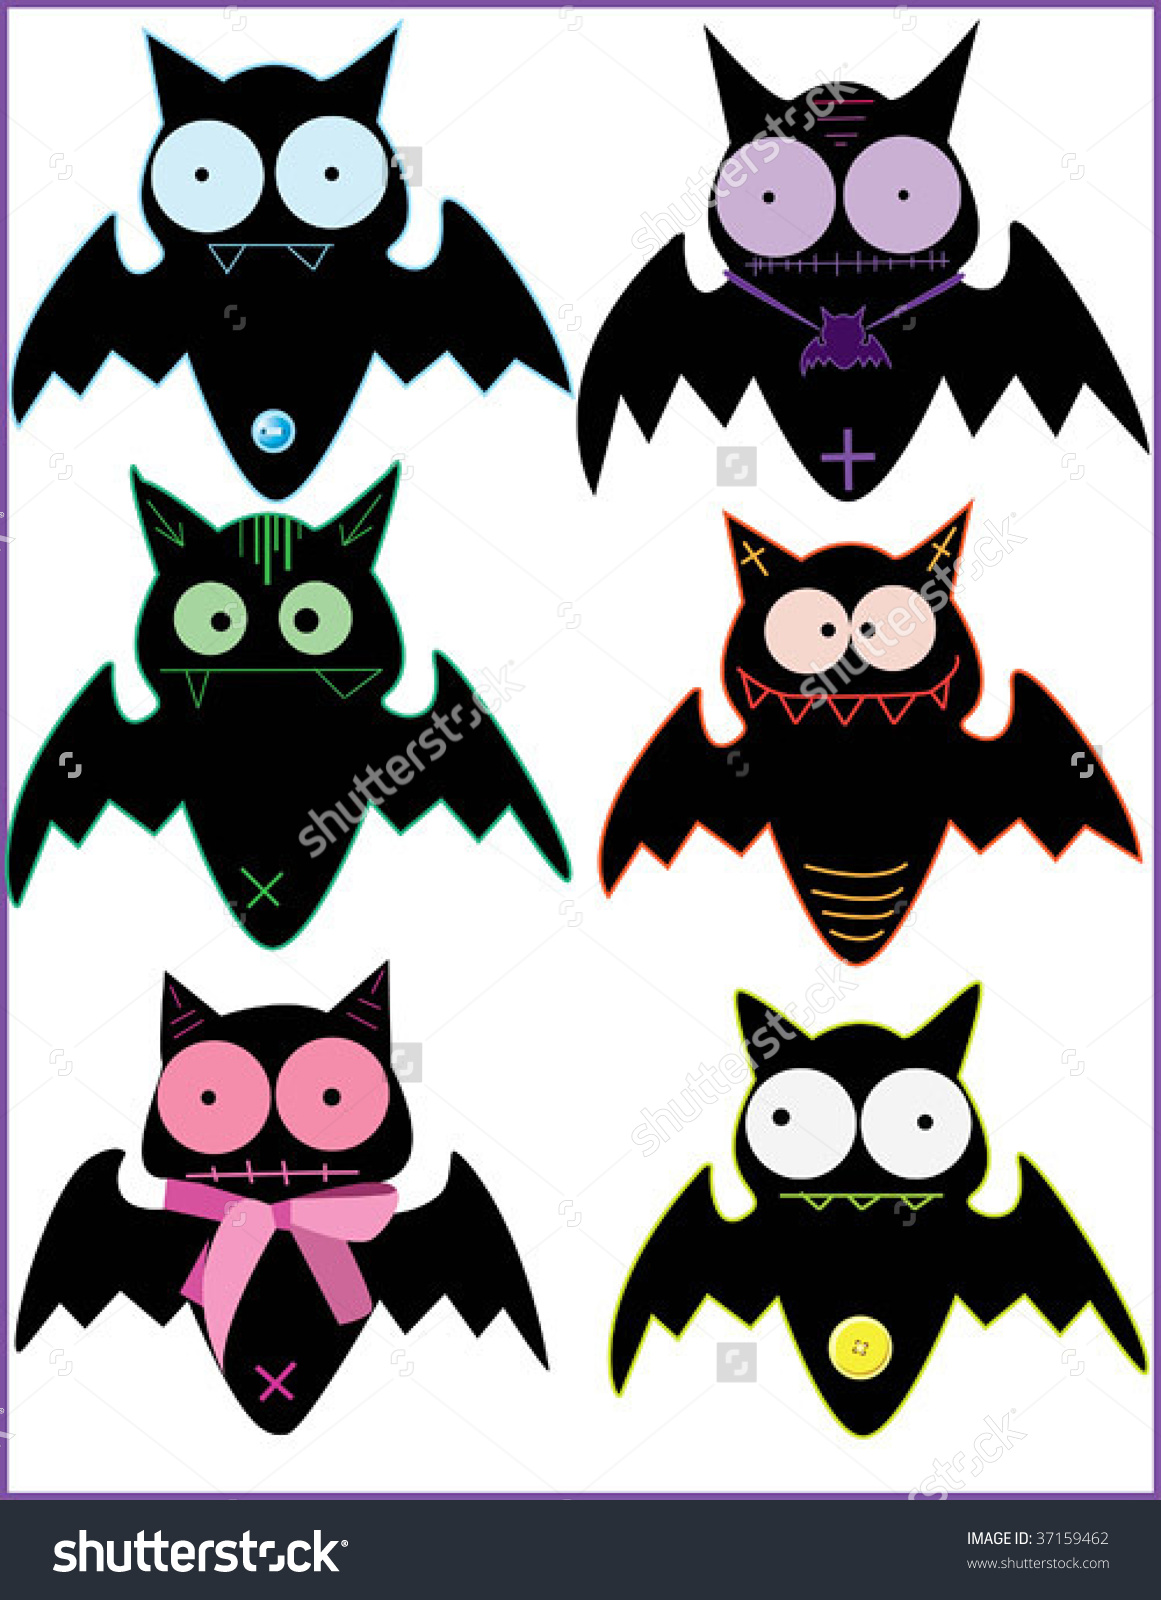 funny pictures and. Bats clipart bat cave